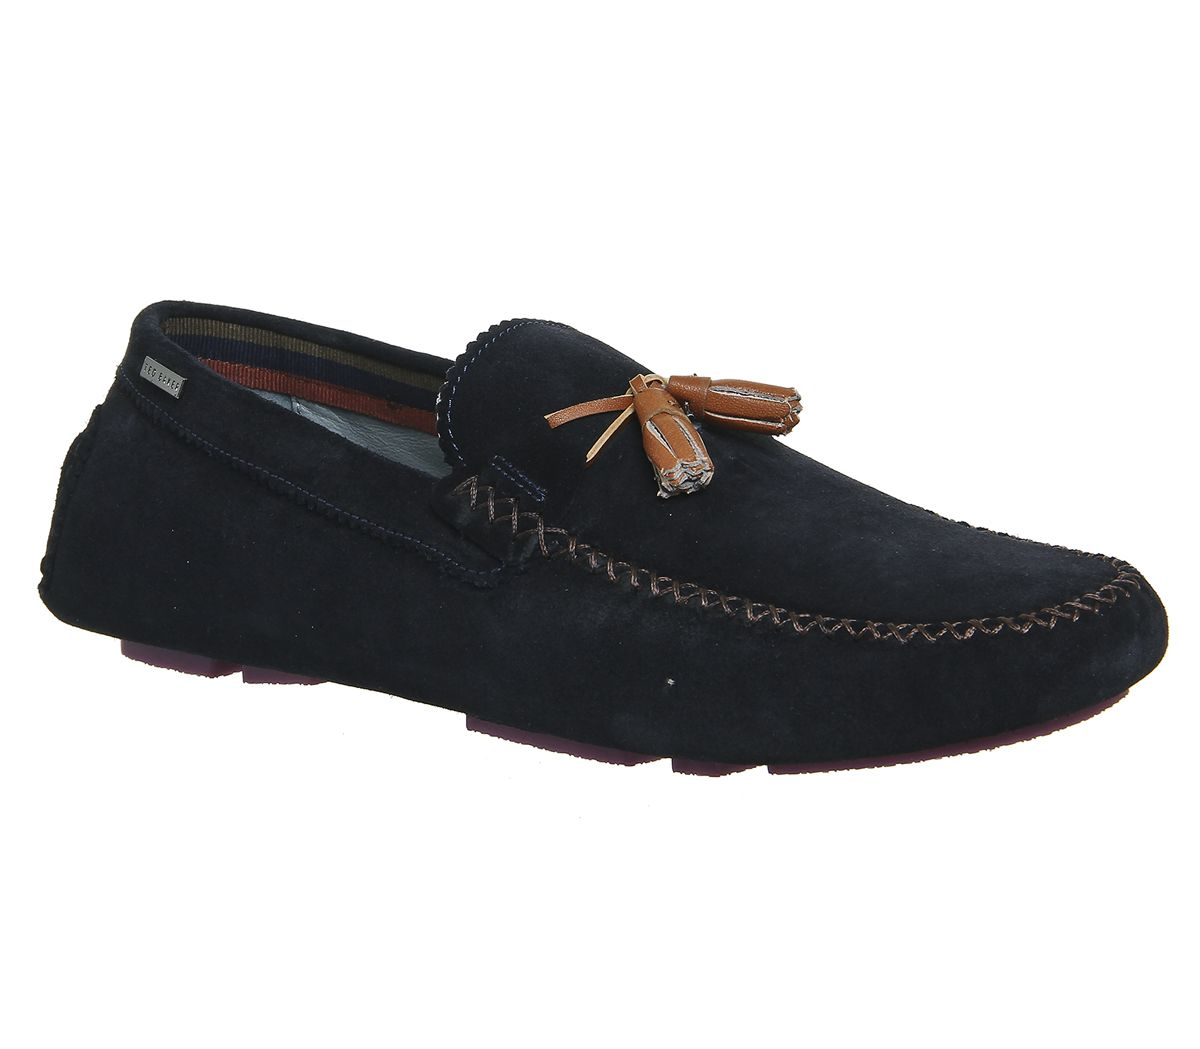 4cbb7953509 Ted Baker Urbonns Driver Dark Blue Suede - Casual